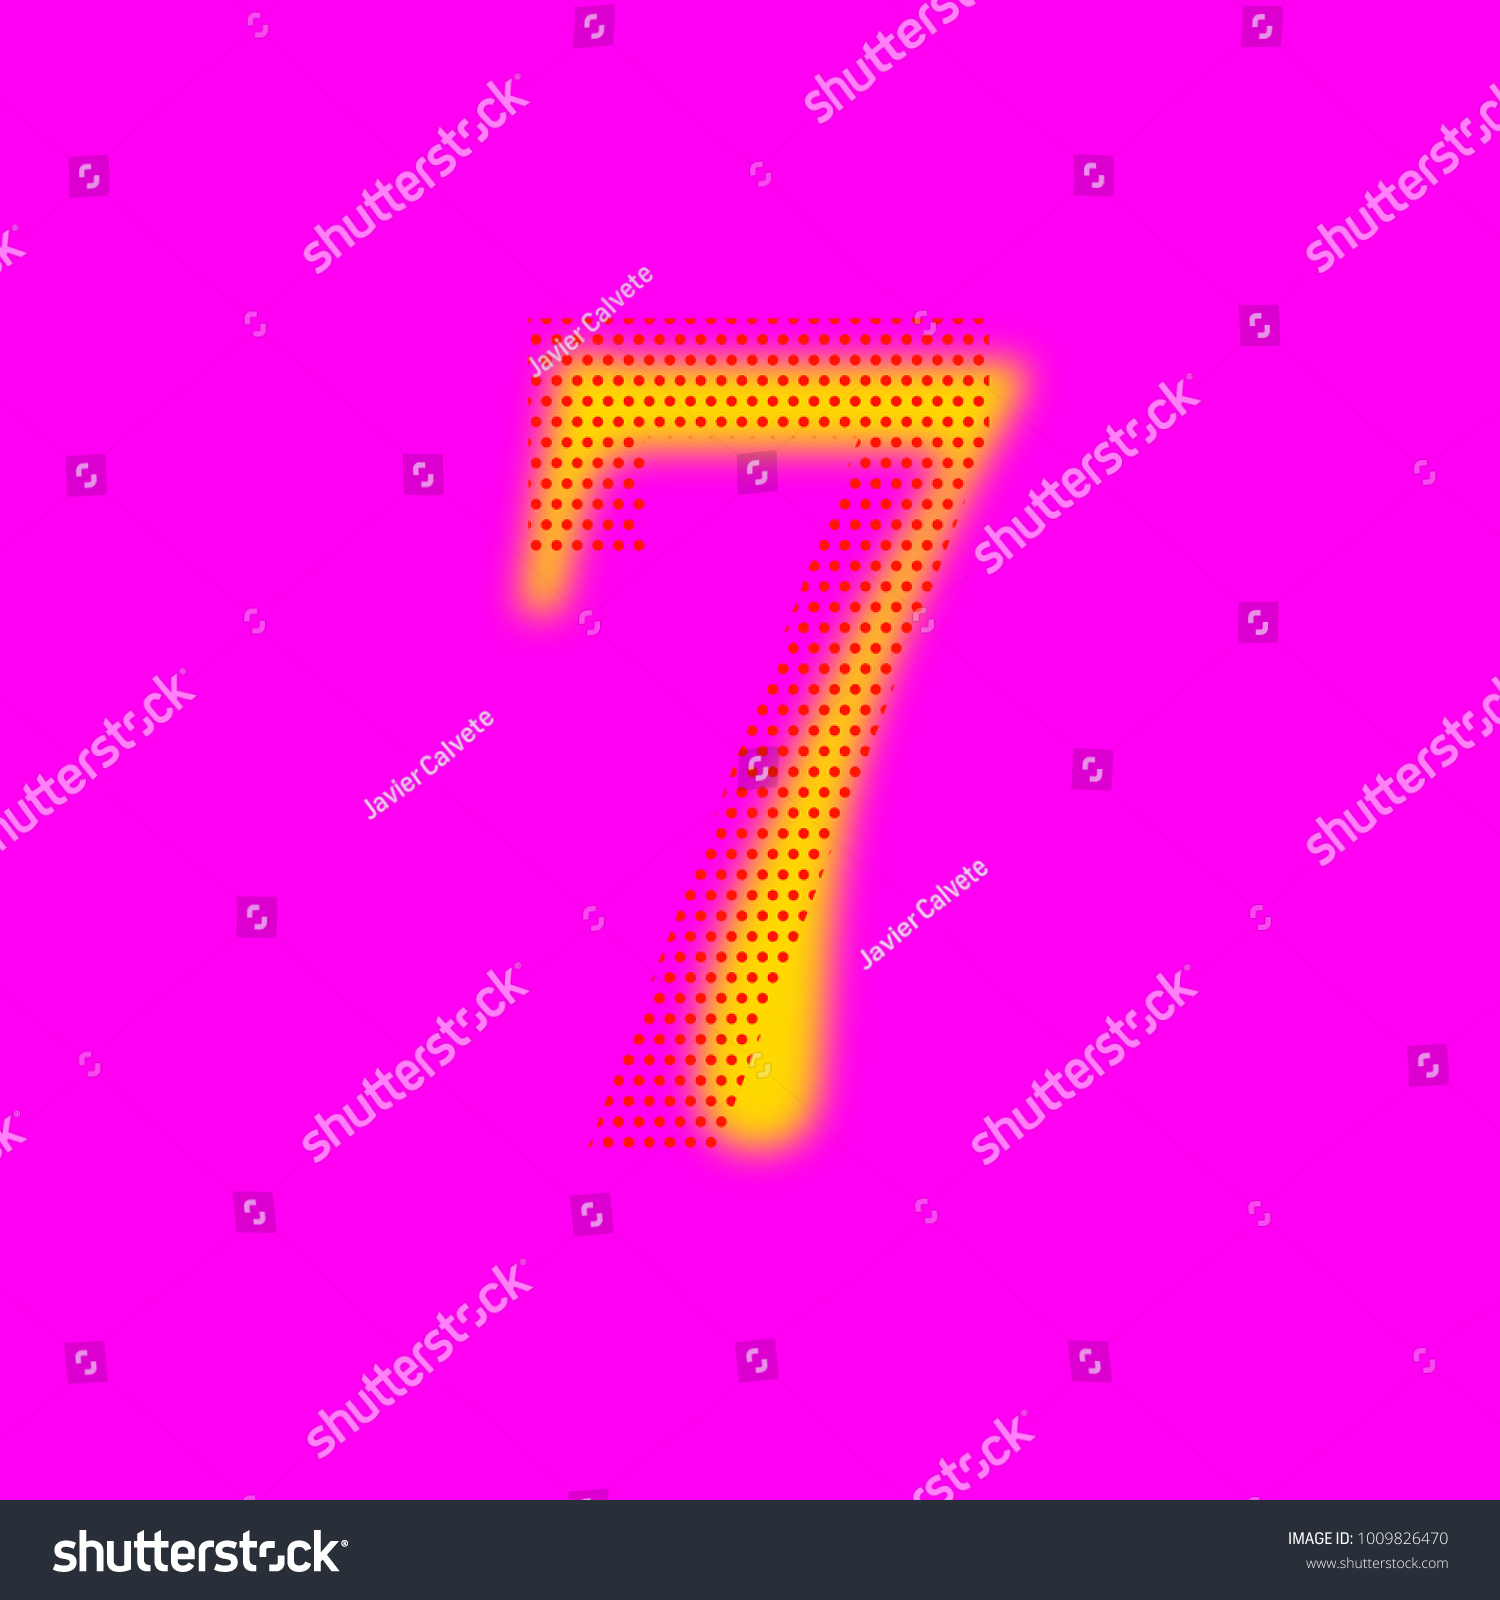 Royalty Free Stock Illustration of Number Seven 7 Effect Blur Points ...